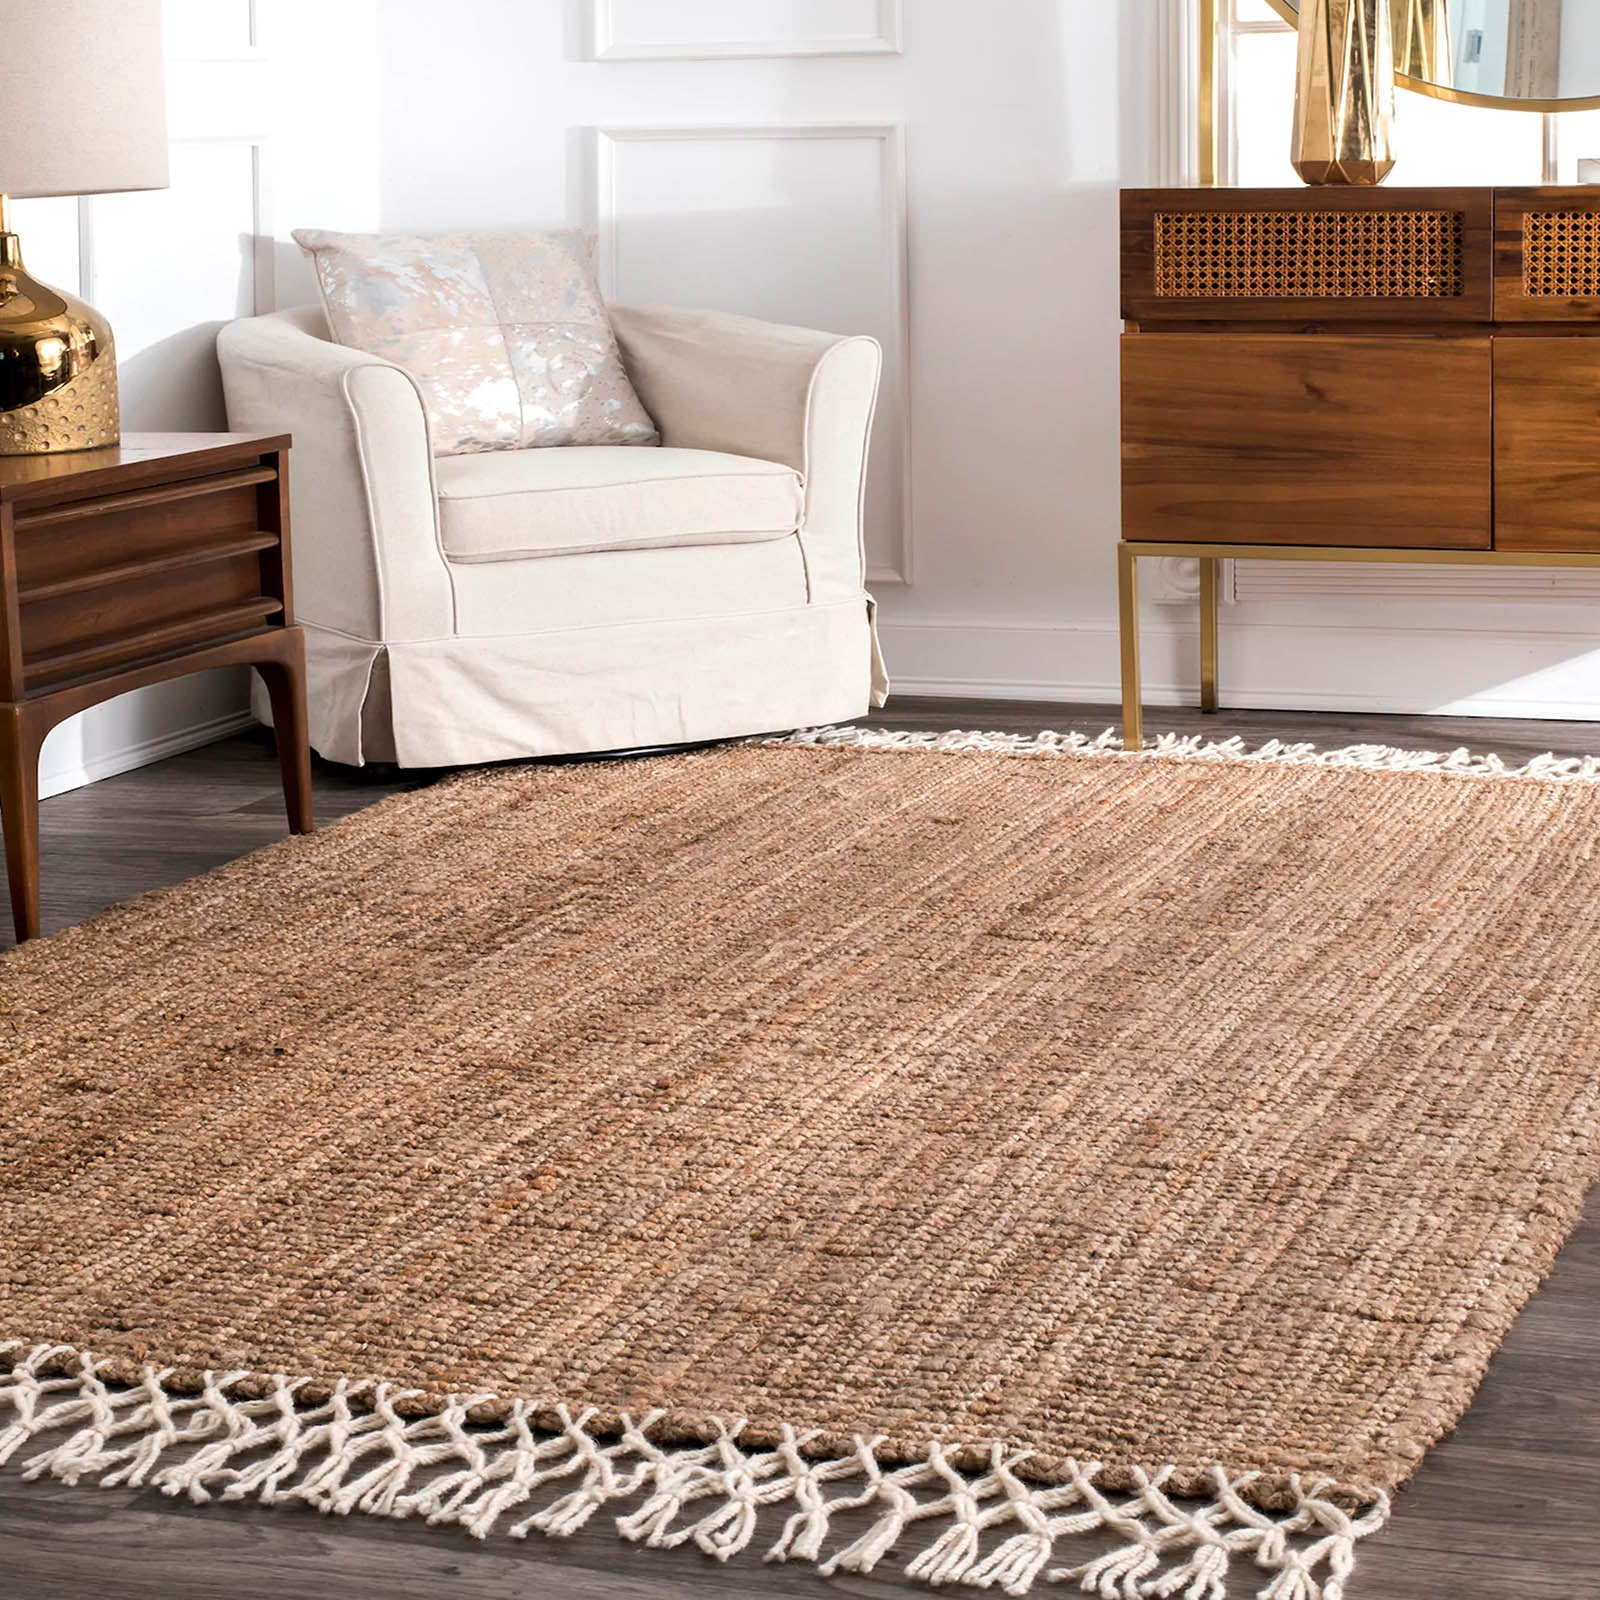 300X200 cm Braided handmade Jute Rug JH-2339-XL -  300X200 سم سجادة من الجوت مضفر يدويًا - Shop Online Furniture and Home Decor Store in Dubai, UAE at ebarza